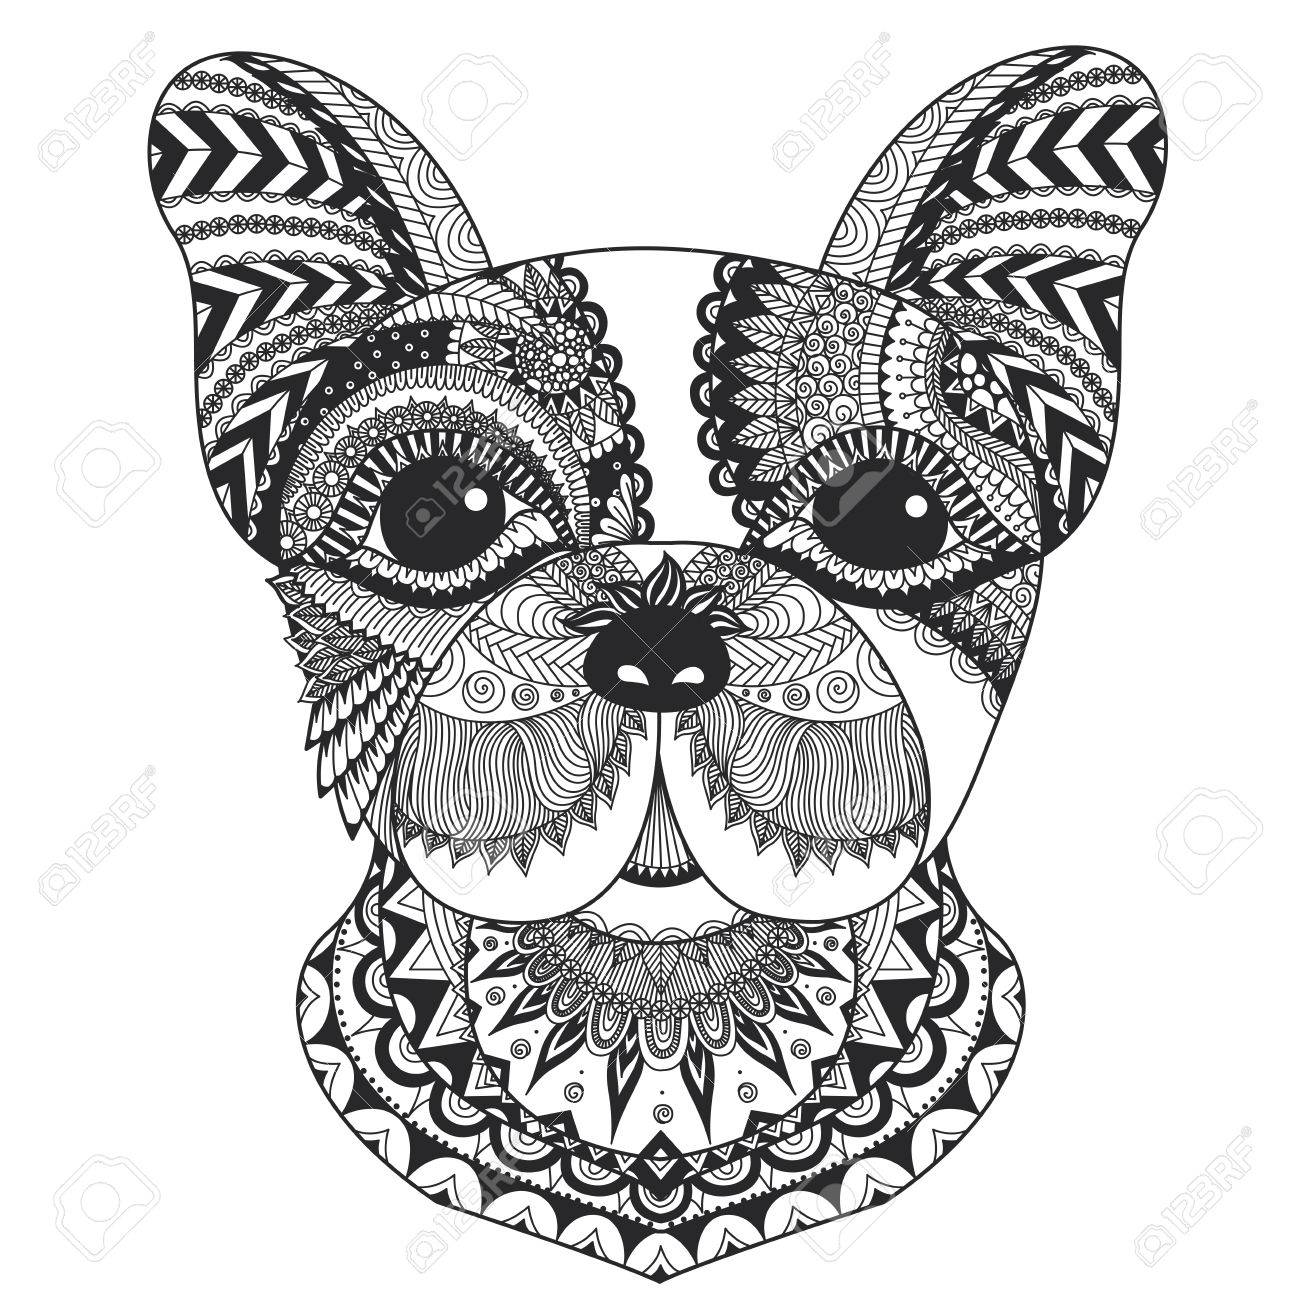 french bulldog puppy zentangle stylized for coloring book for